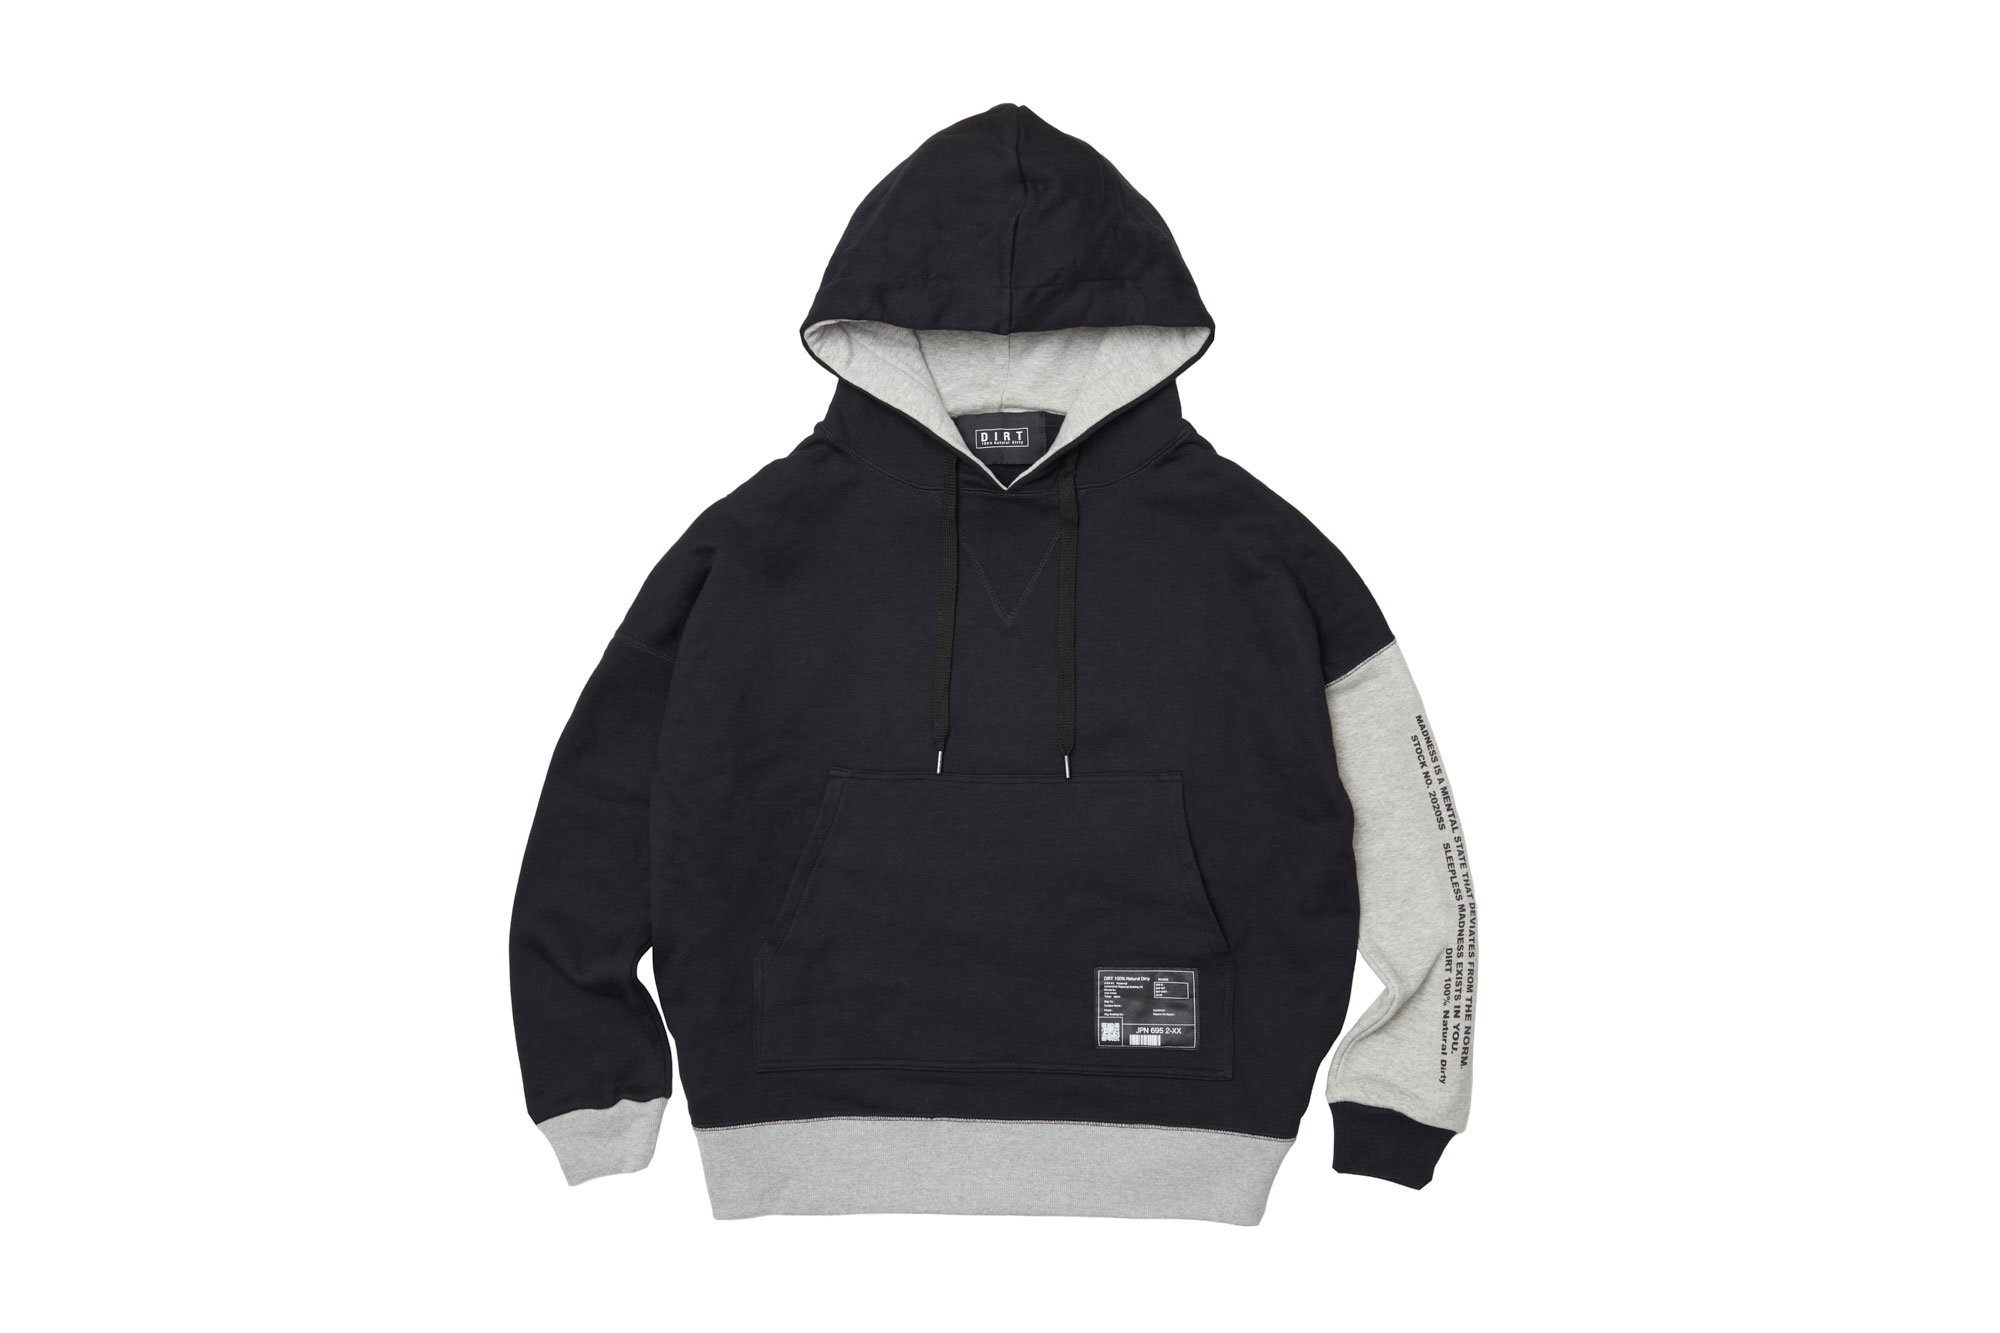 <img class='new_mark_img1' src='https://img.shop-pro.jp/img/new/icons14.gif' style='border:none;display:inline;margin:0px;padding:0px;width:auto;' />2020AW collection Bicolor Hoodie BL